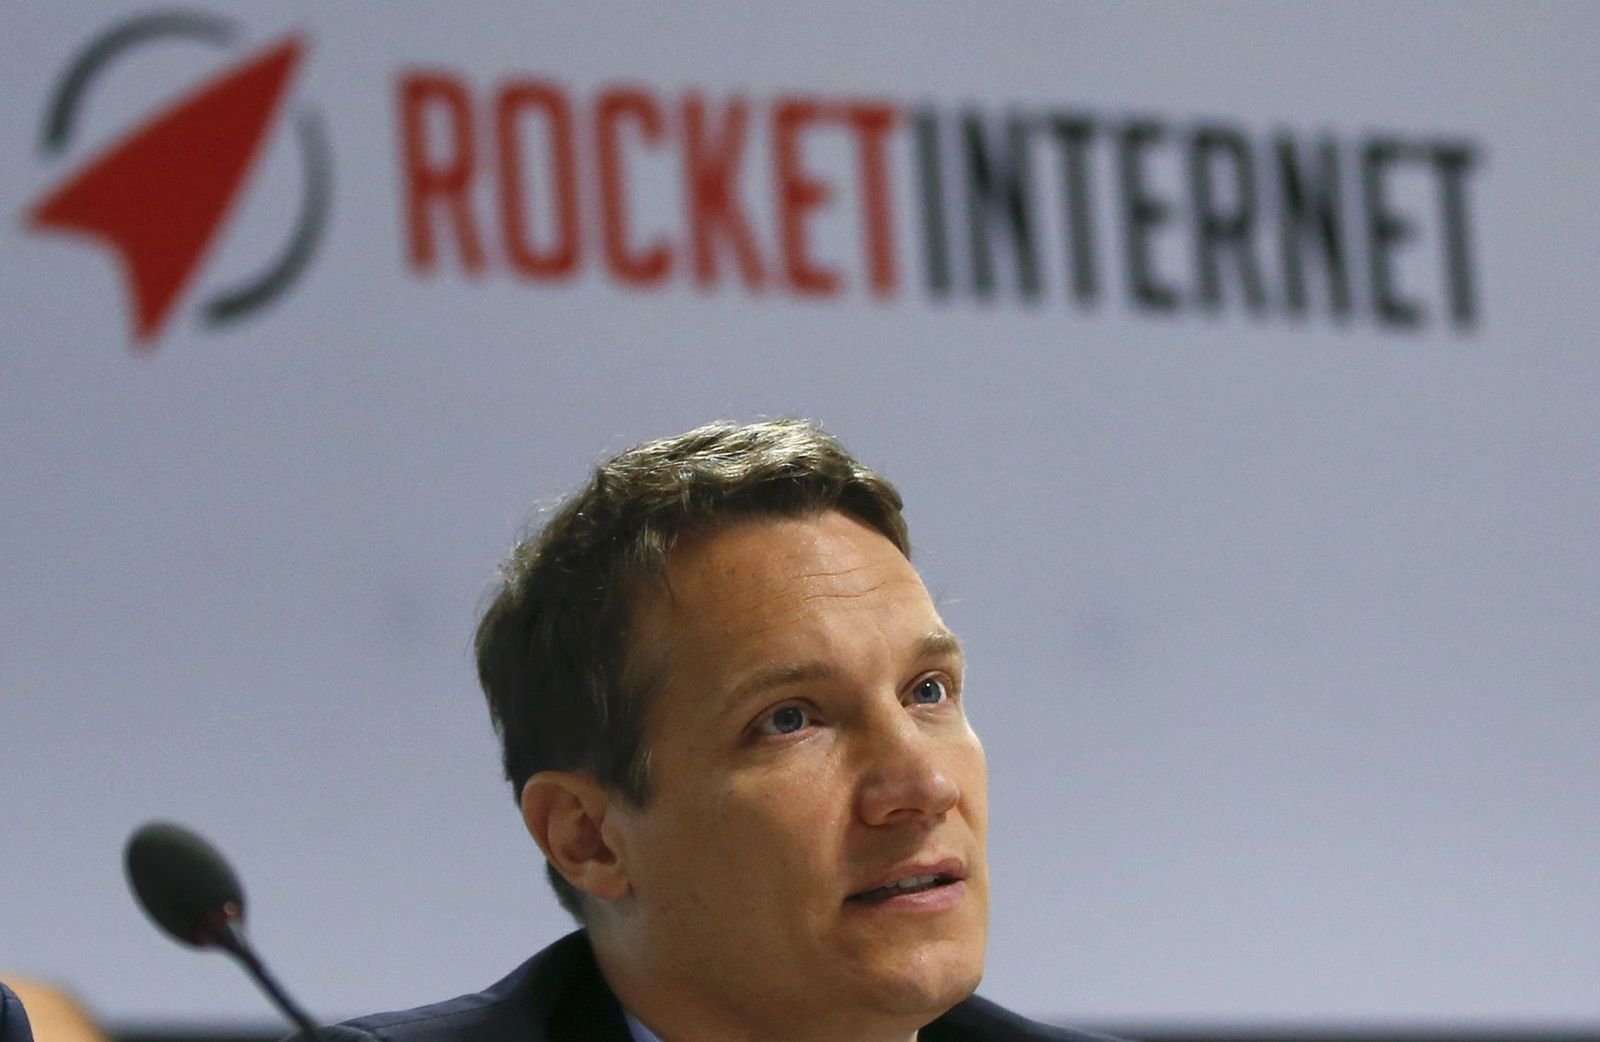 ROCKET INTERNET-FUND/